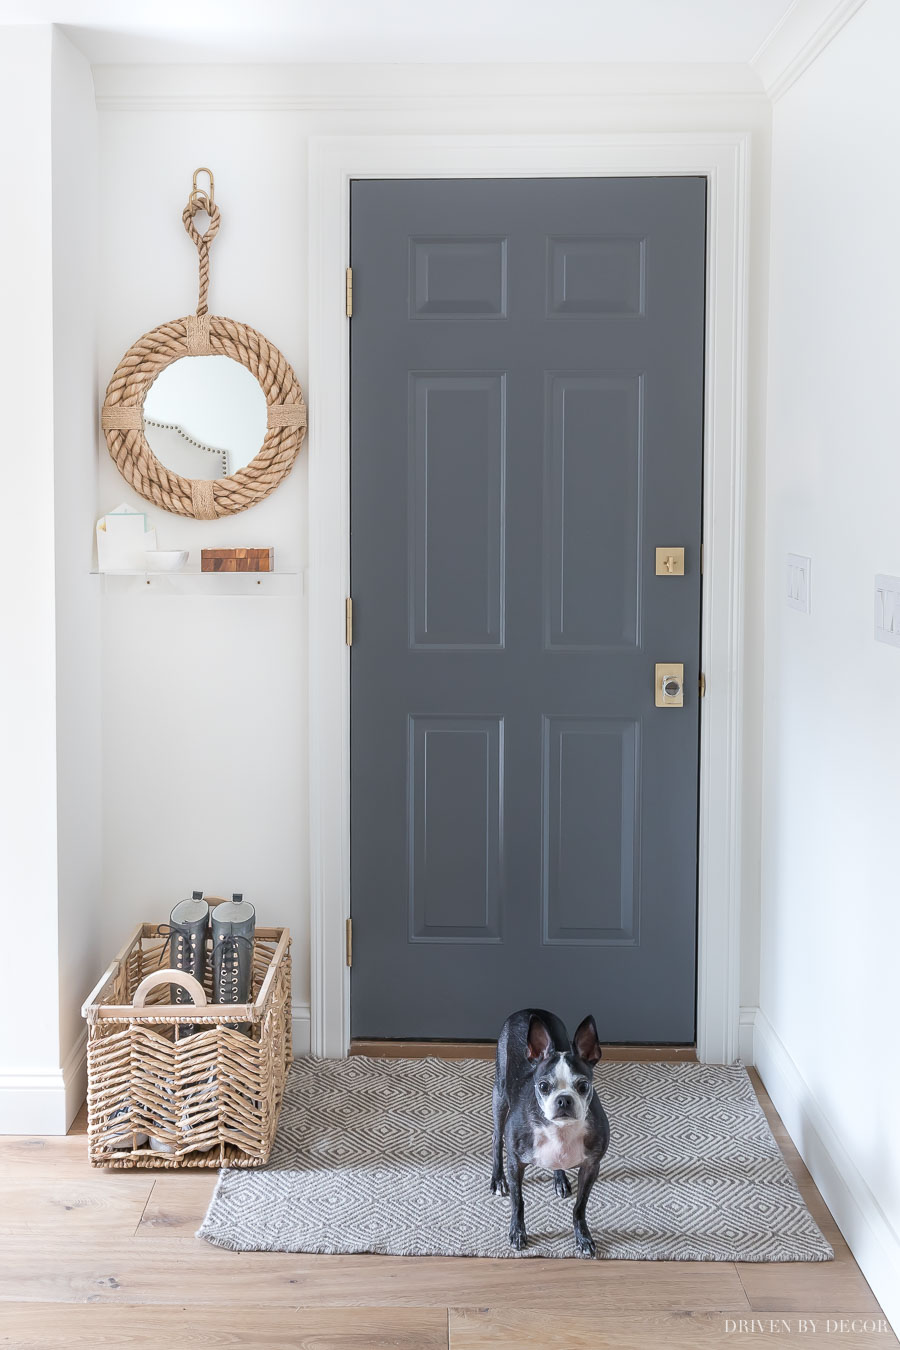 Such a cute round rope mirror in this small entryway!